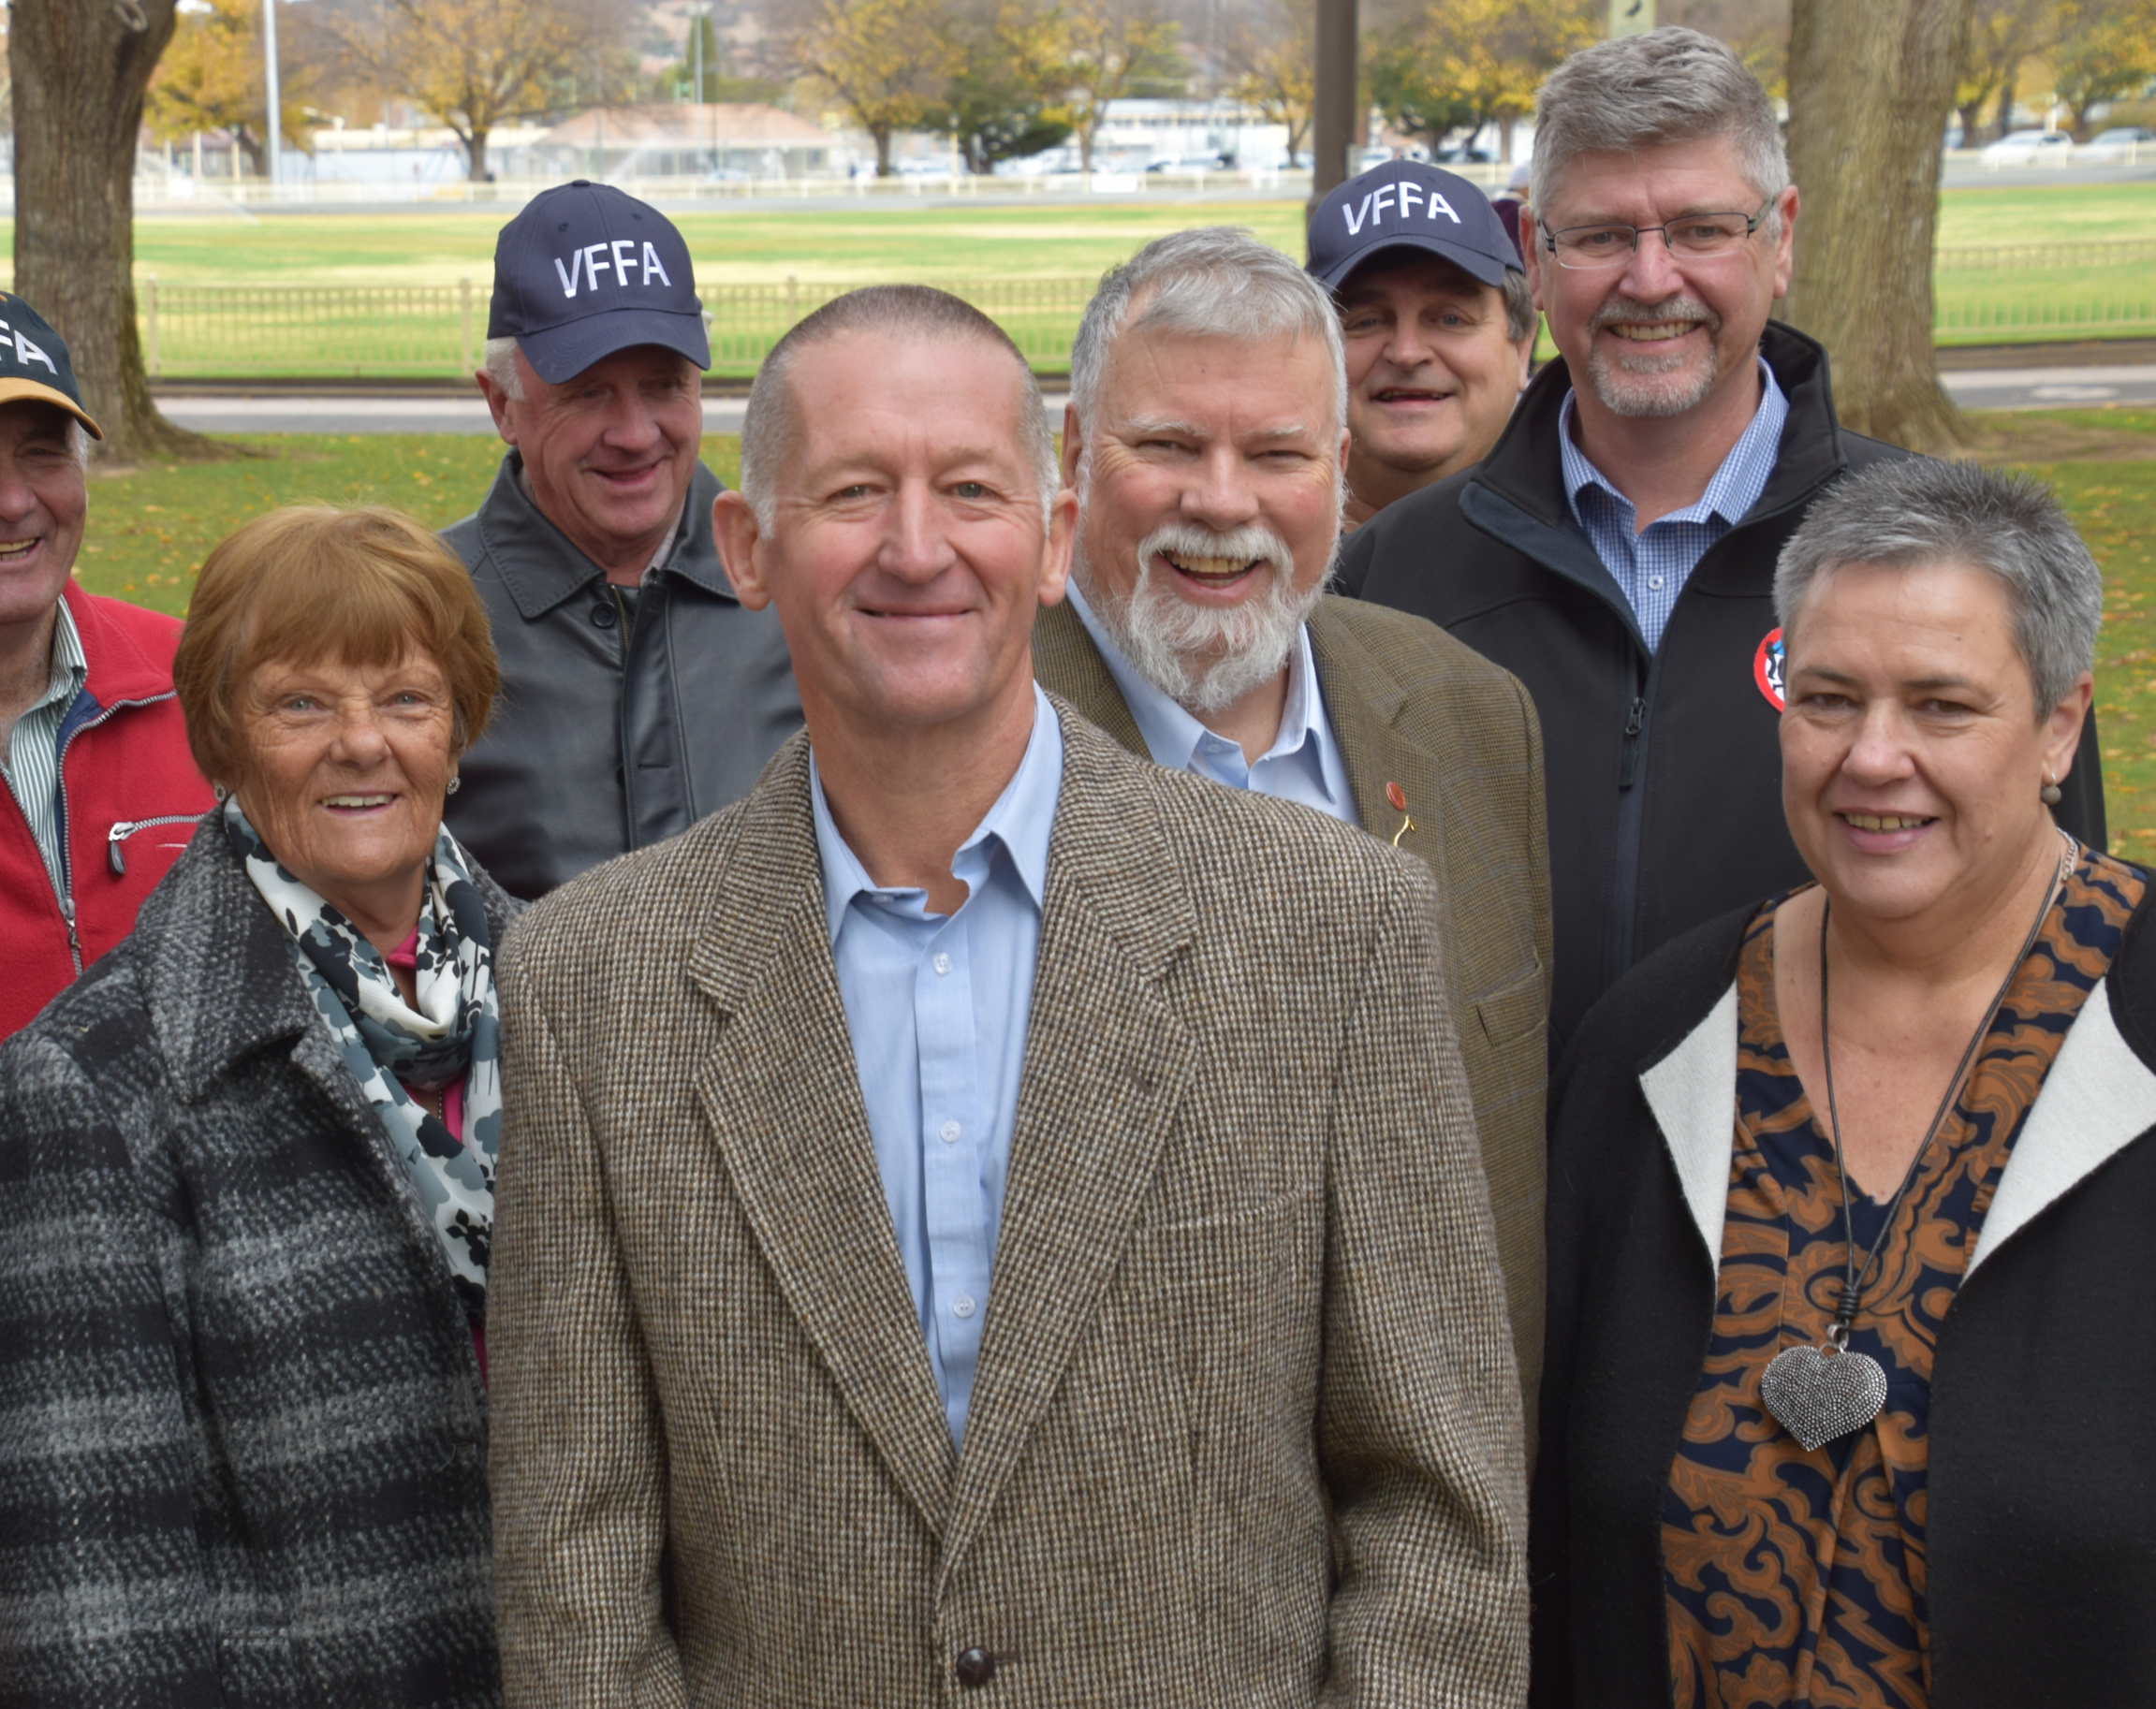 Mick Holton and supporters in Queanbeyan